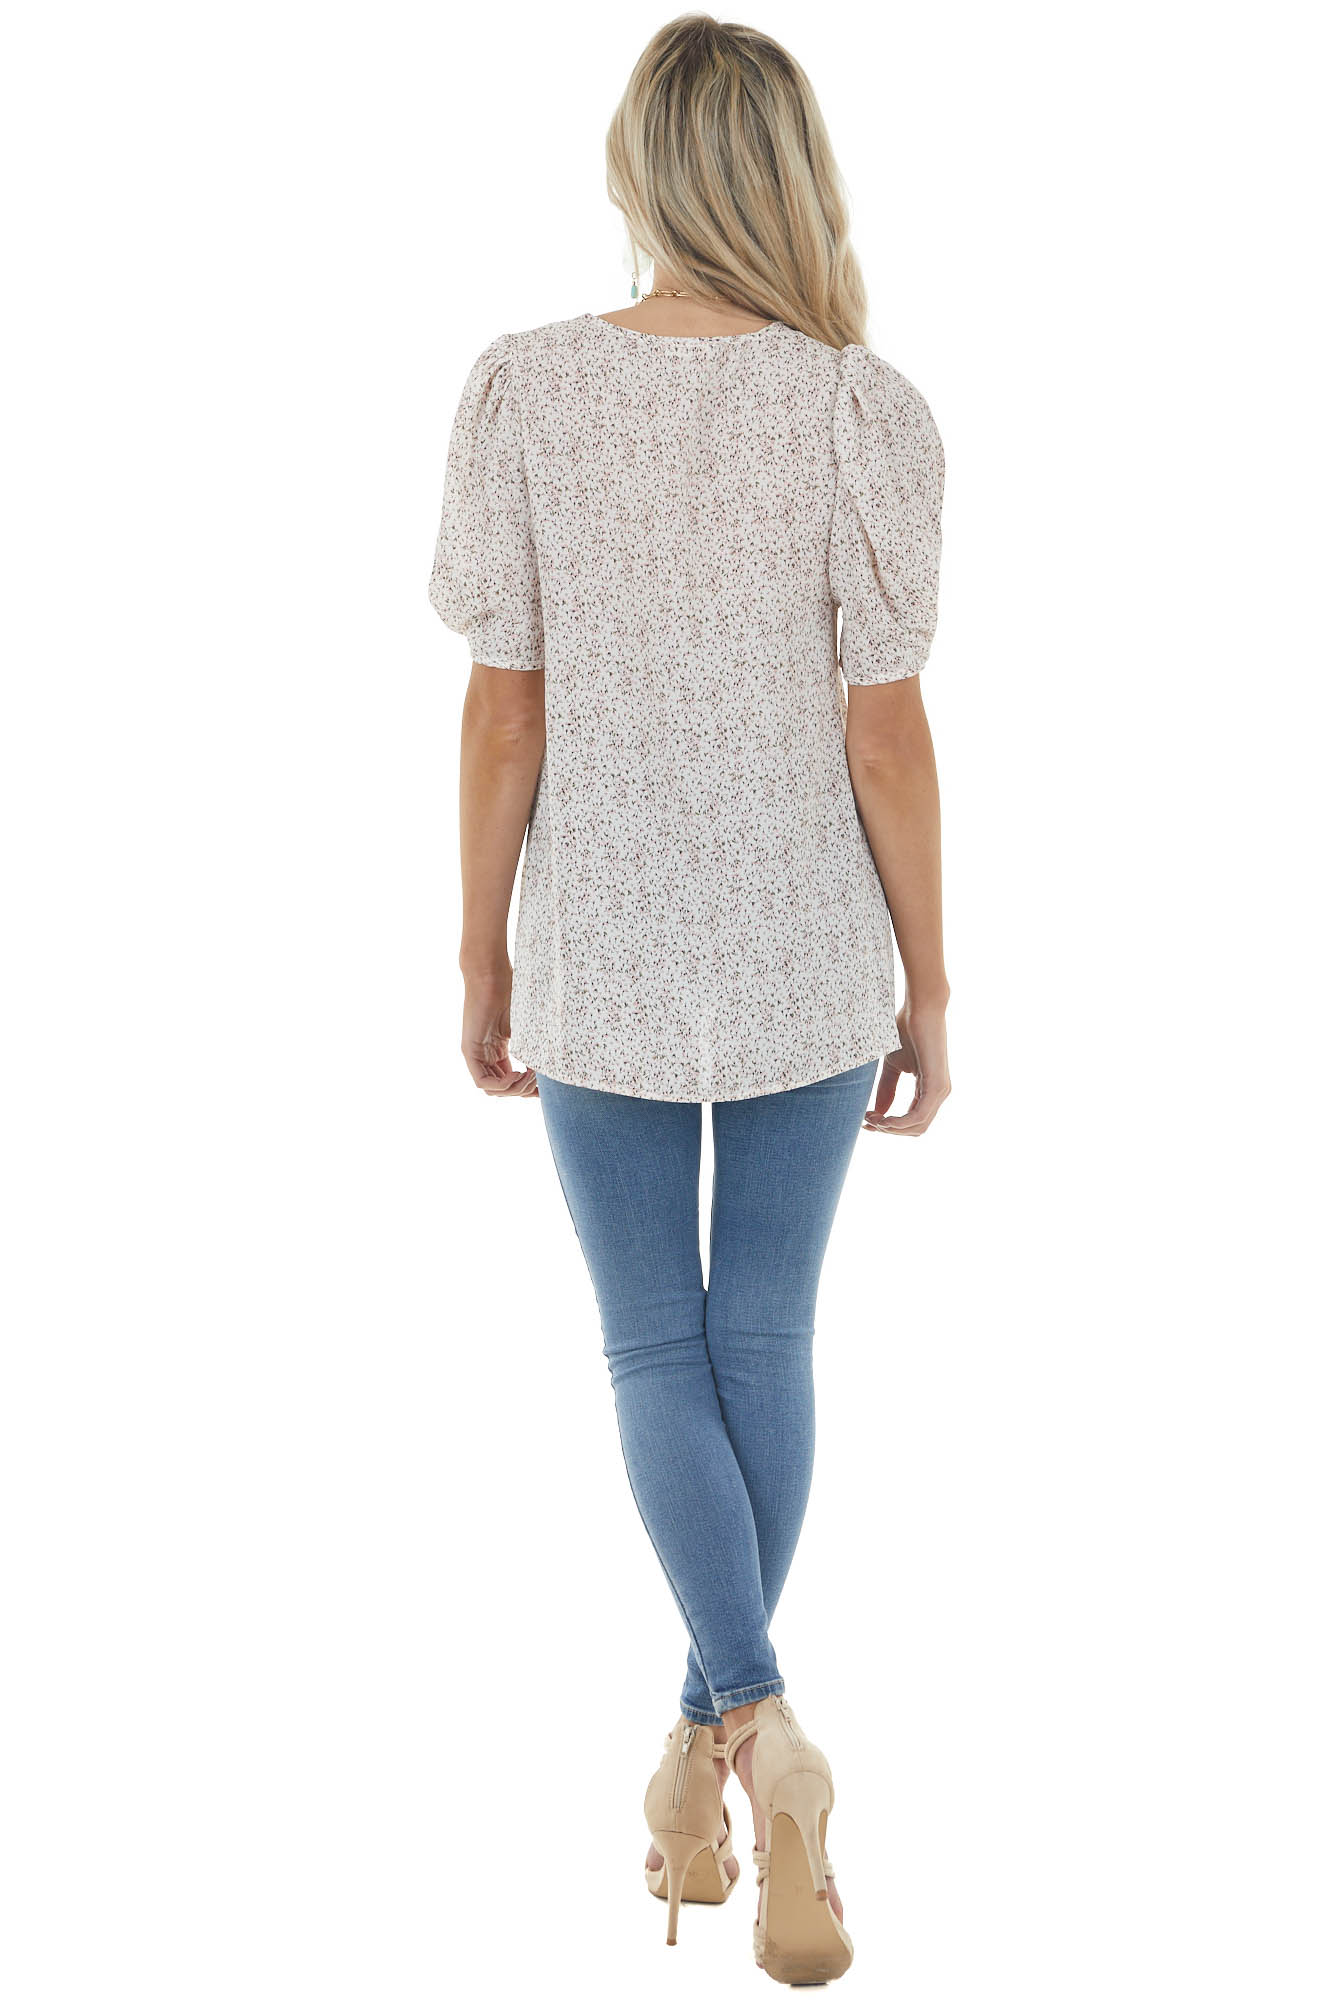 Off White Ditsy Floral Blouse with Short Bubble Sleeves